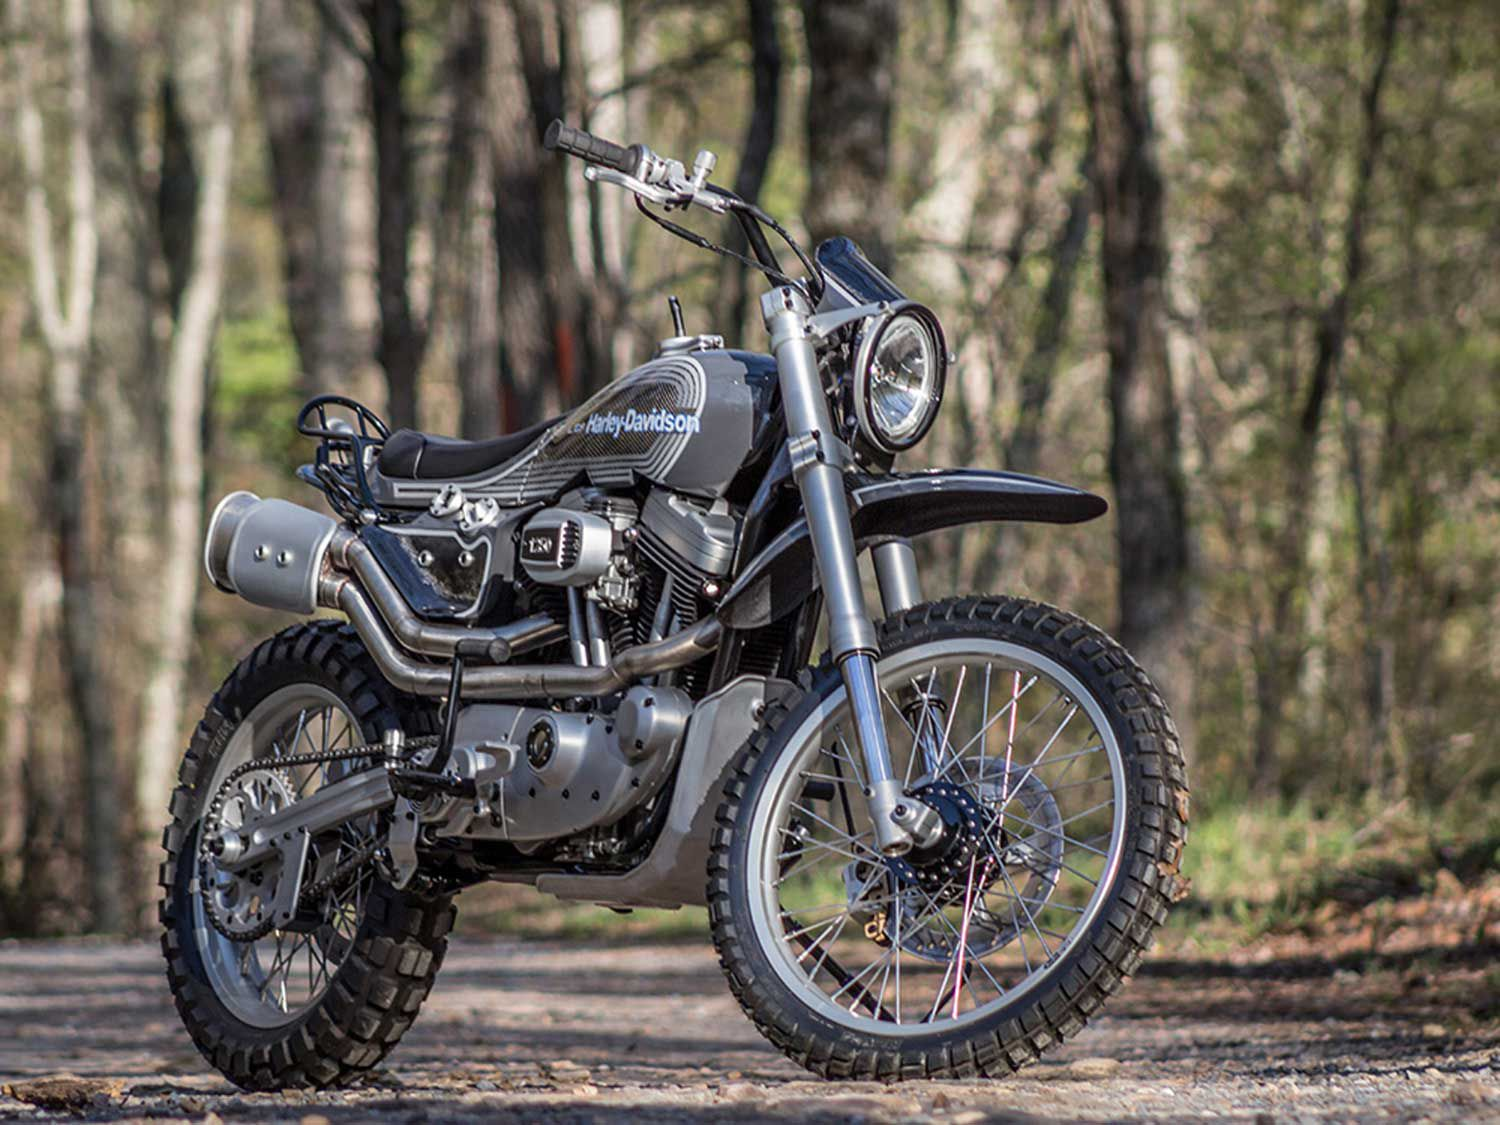 "For the wandering mind of the wandering soul, here's a list of dream bikes to ride down imaginary roads. Whether they spawned from sleeplessness or the drink, who's to say?  <a href=""https://www.motorcyclistonline.com/new-dream-motorcycles-we-wish-existed/"">Read more: New Dream Motorcycles We Wish Existed »</a>"